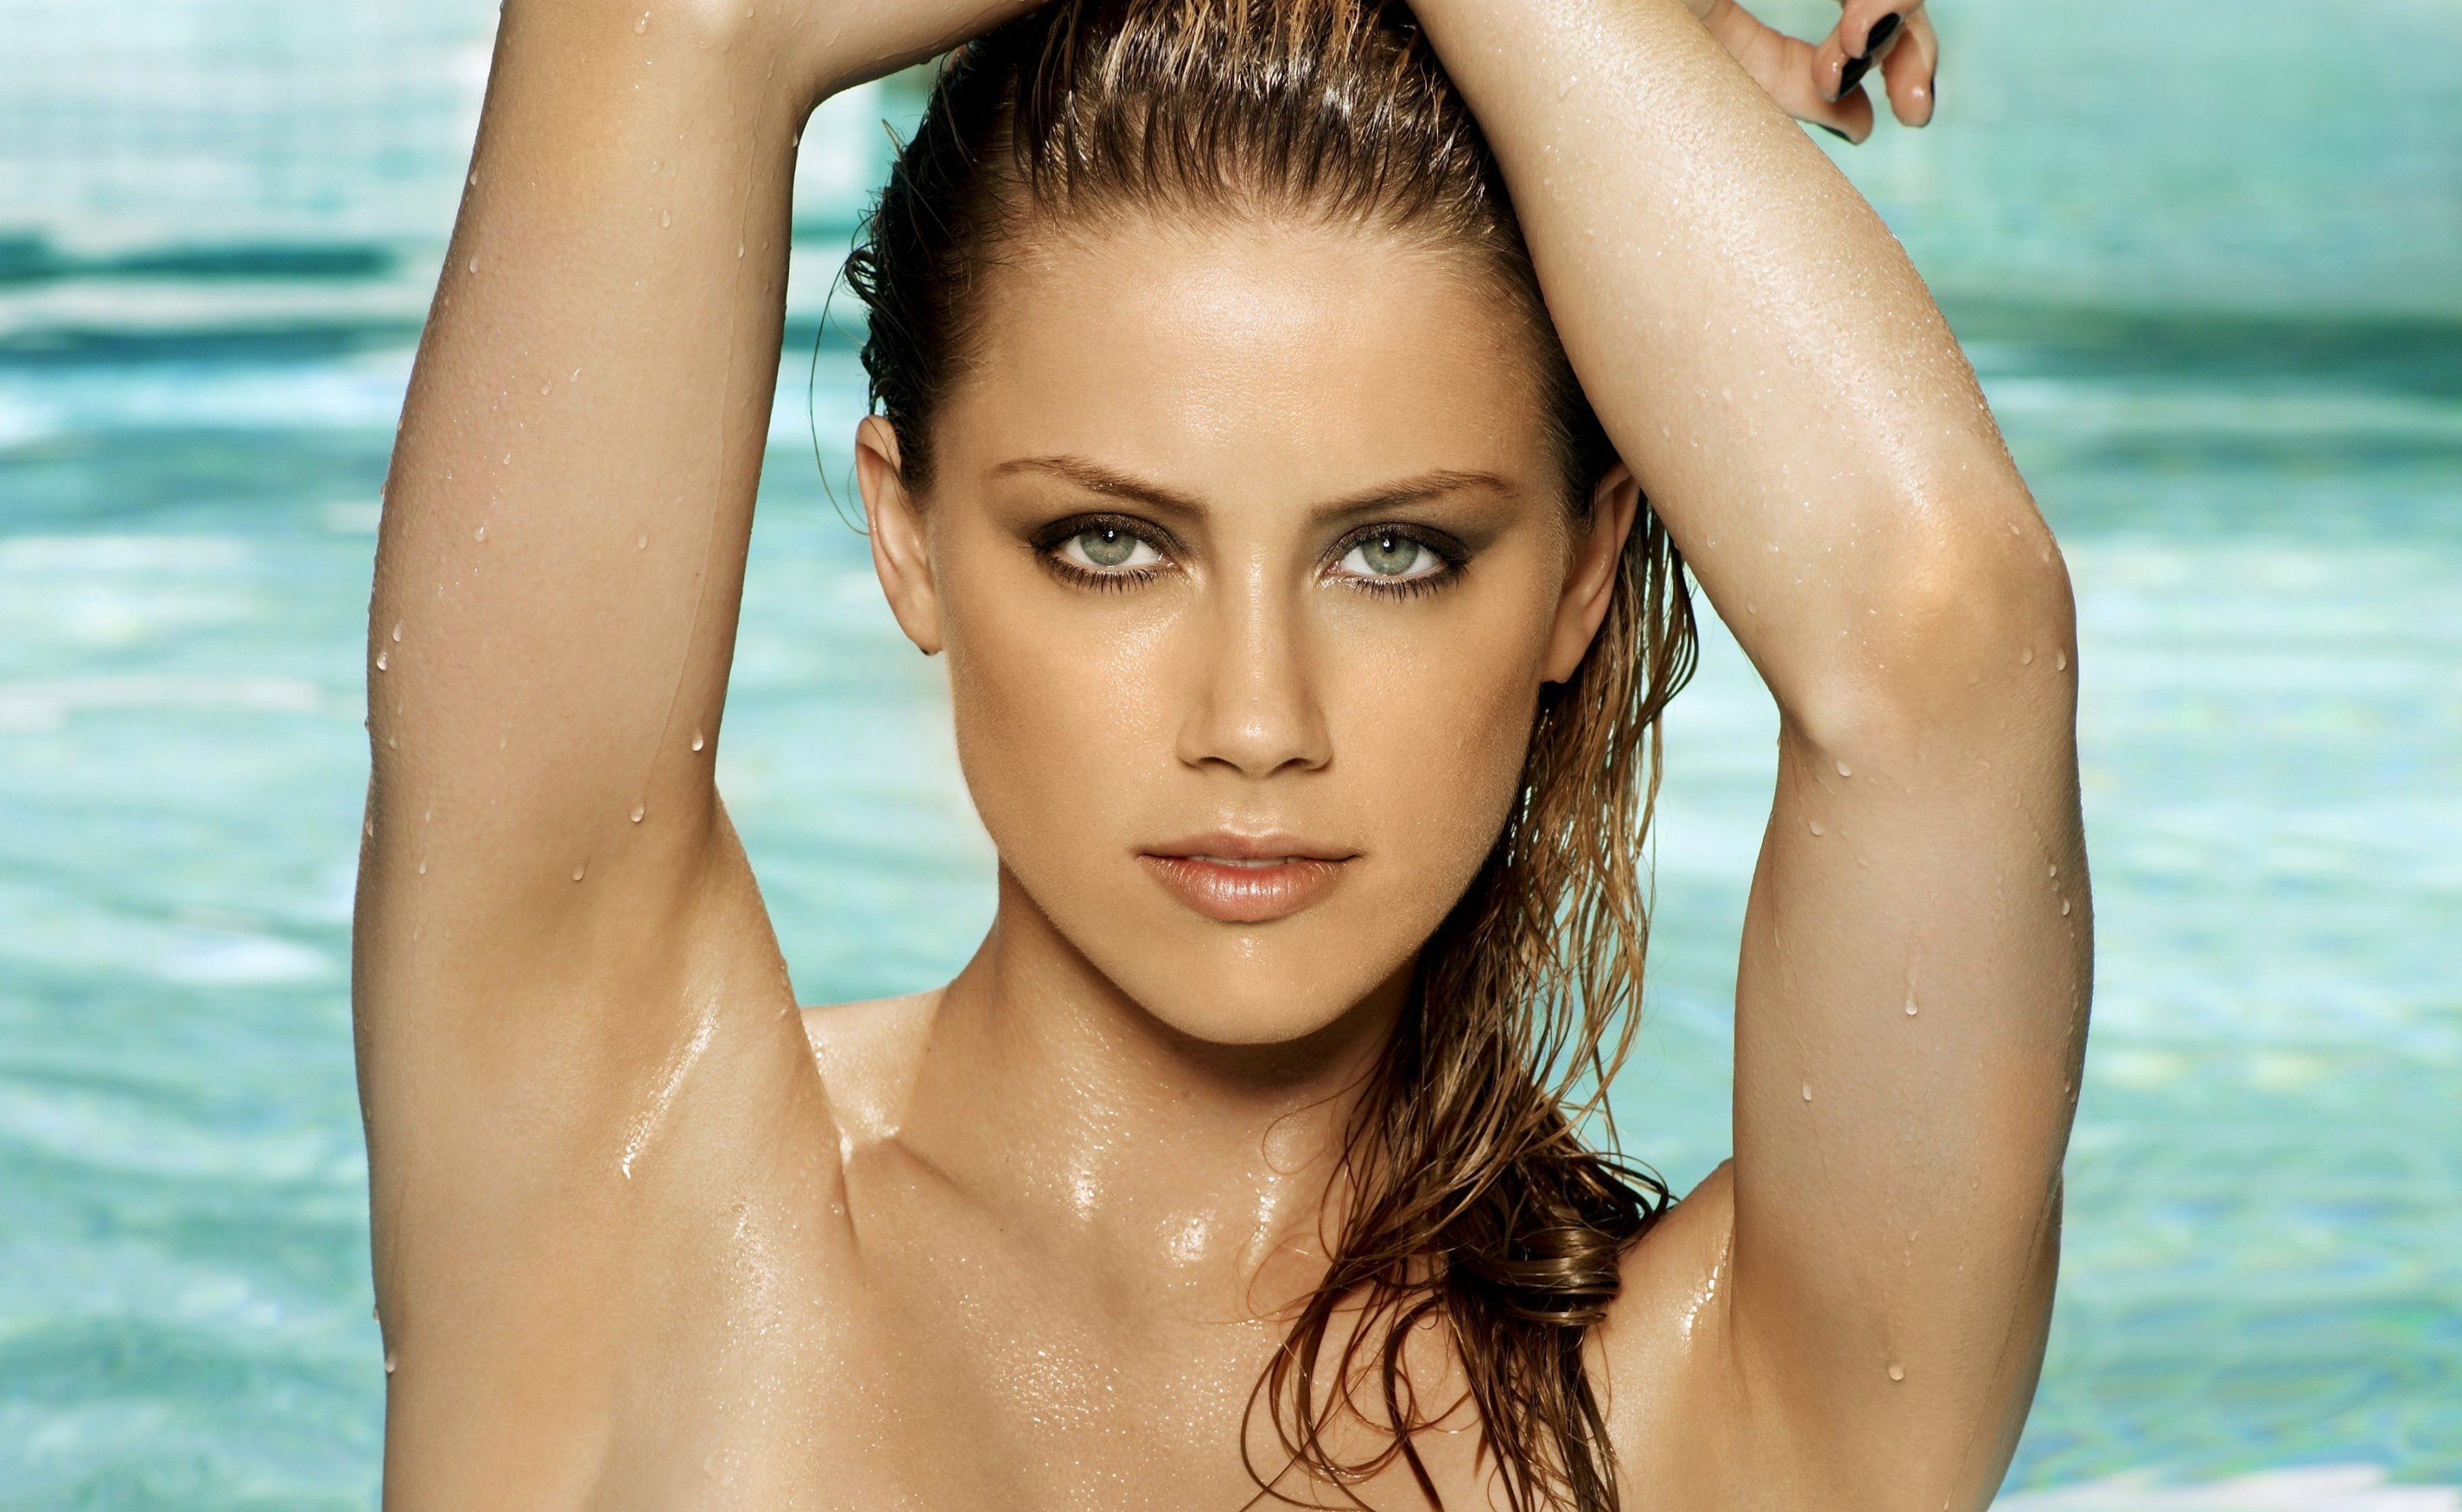 Amber Heard - Height, Weight and Body Measurements